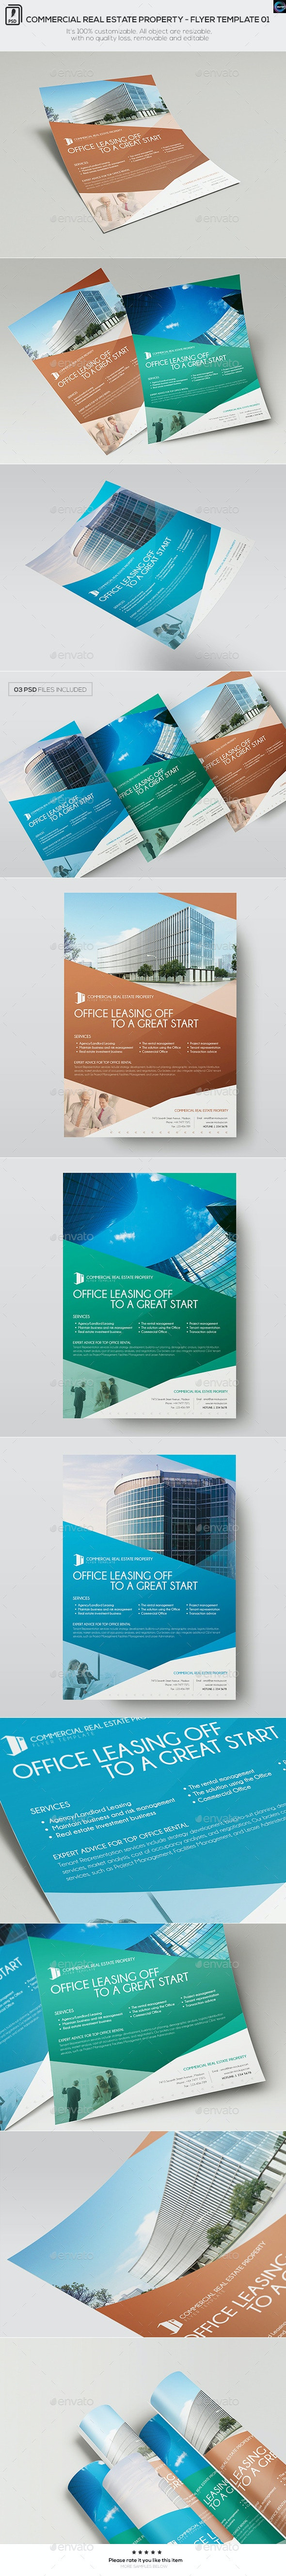 Commercial Real Estate Property - Flyer Template 01 - Commerce Flyers